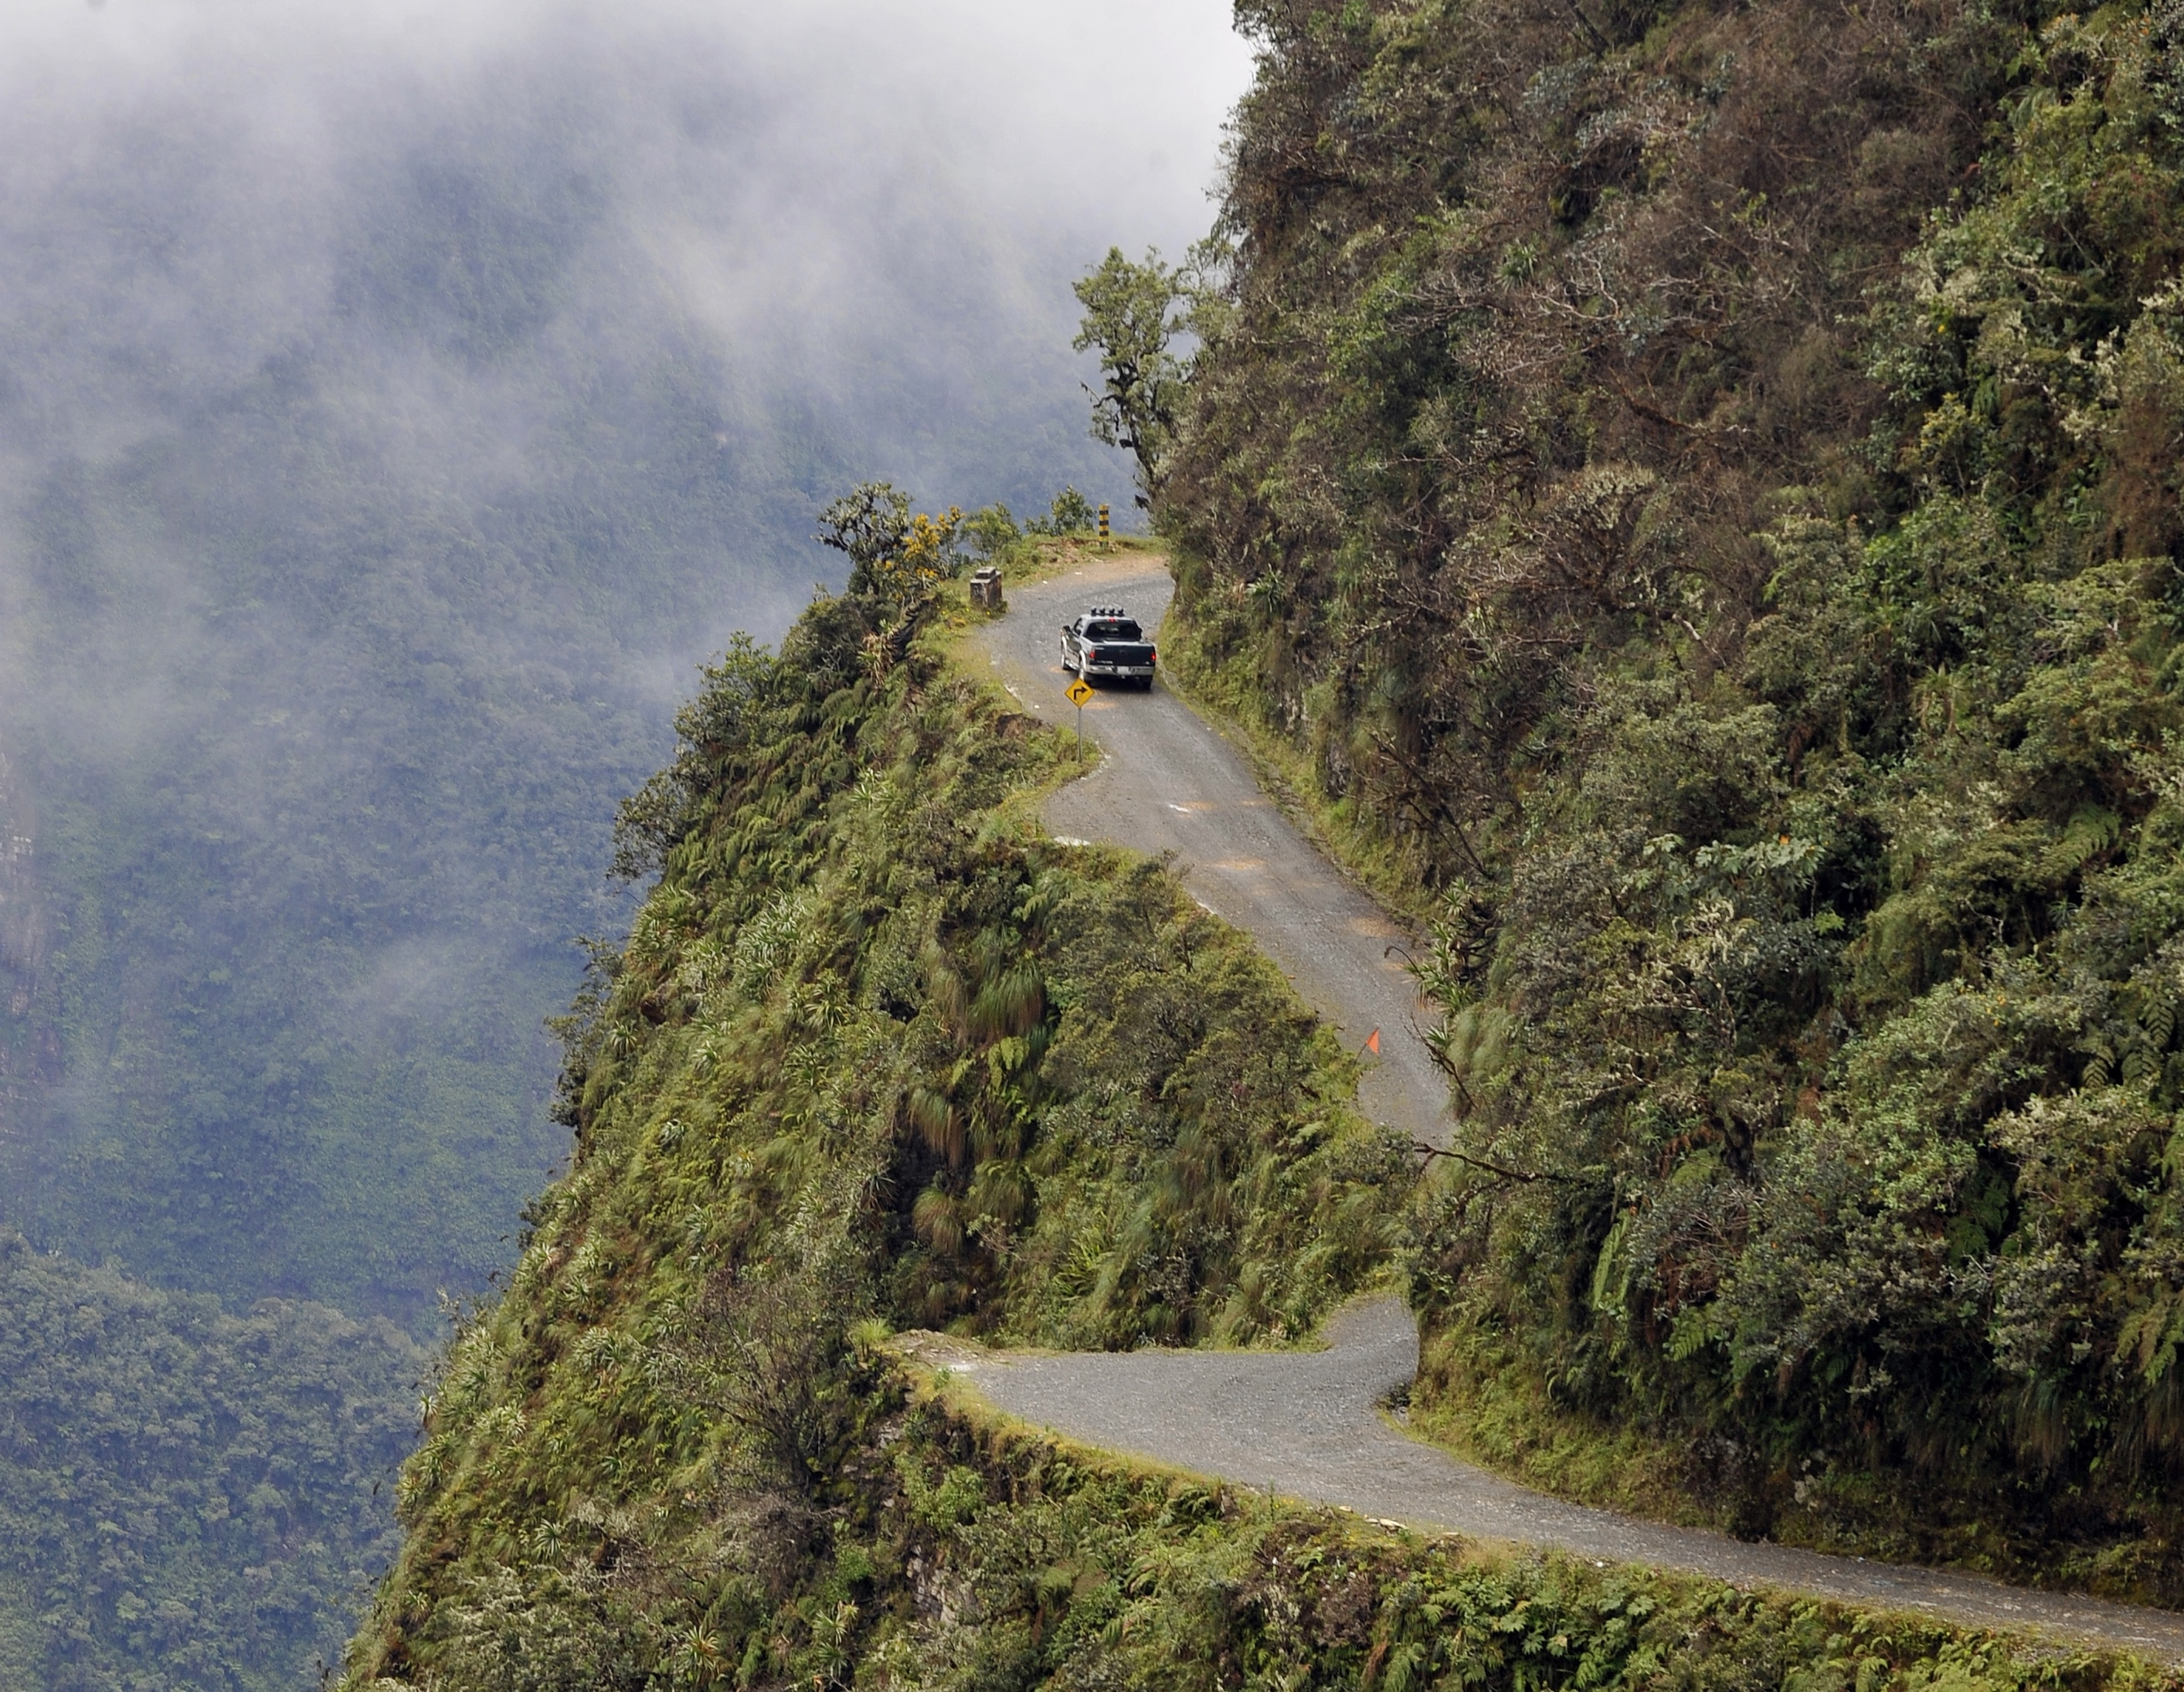 The Worlds Most Dangerous Road And Ot Visordown - The 10 scariest roads in the world